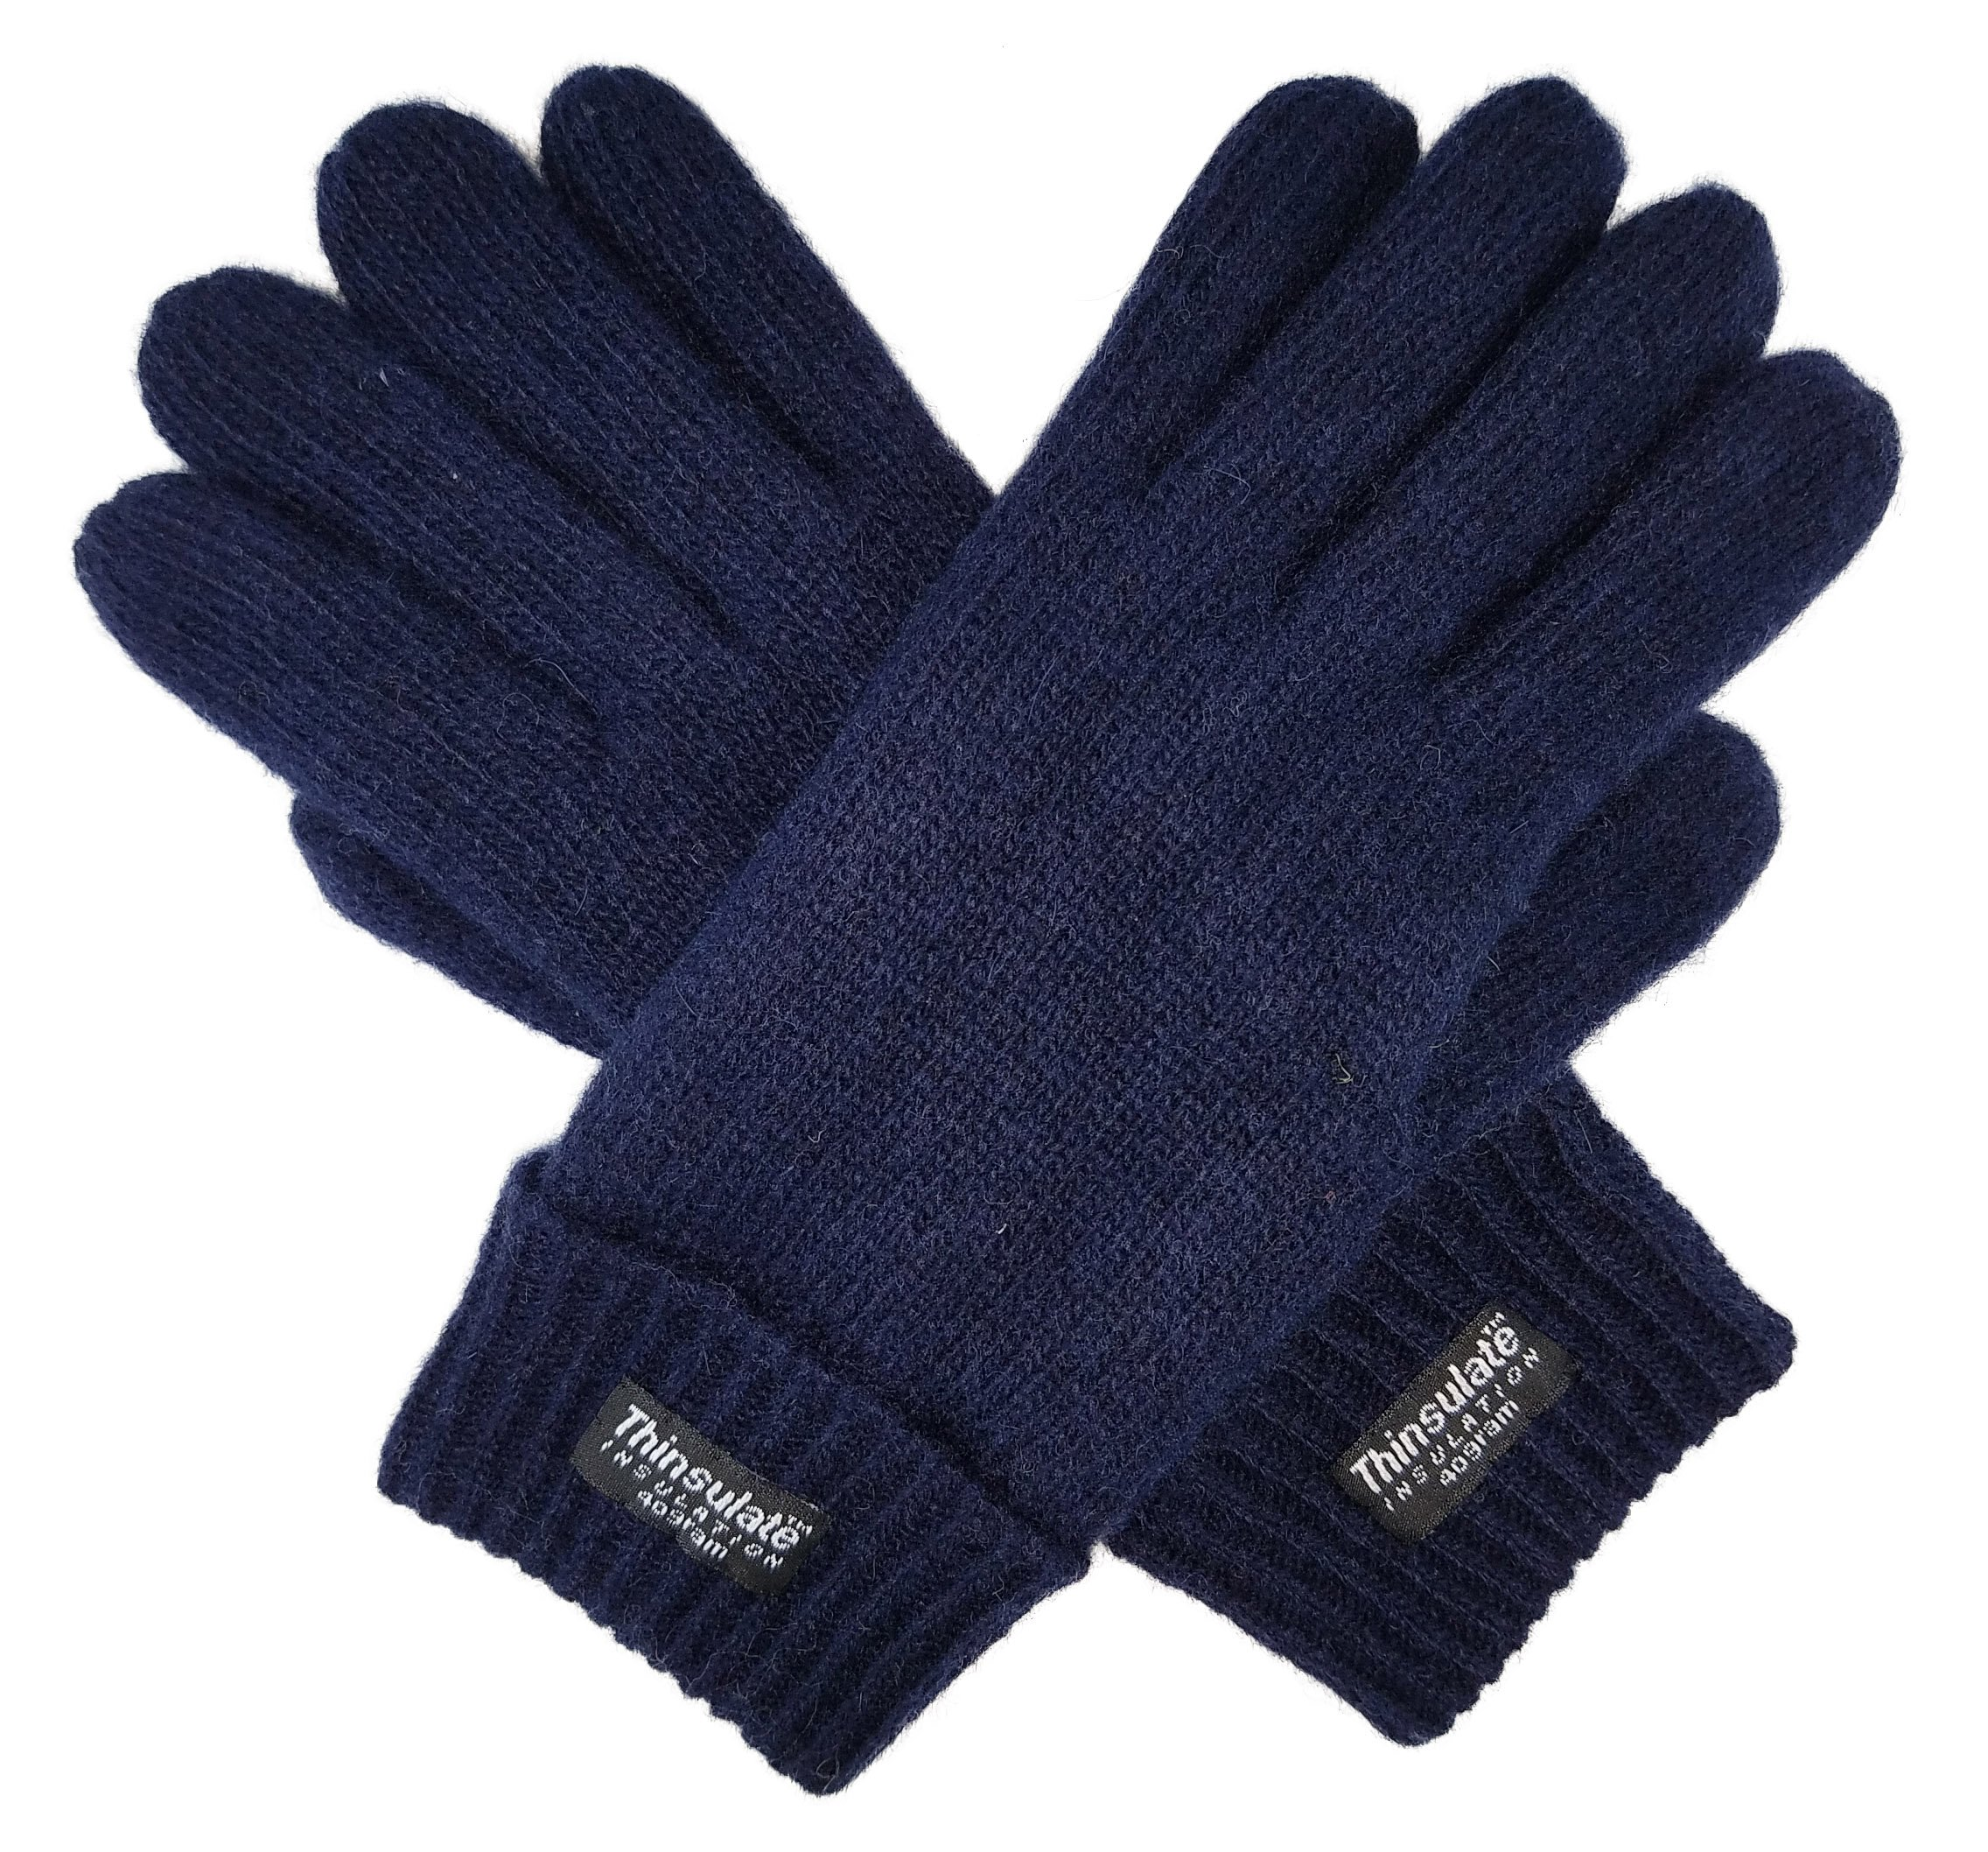 Bruceriver Ladie's Wool Knit Gloves with Thinsulate Lining Size XL (Navy)